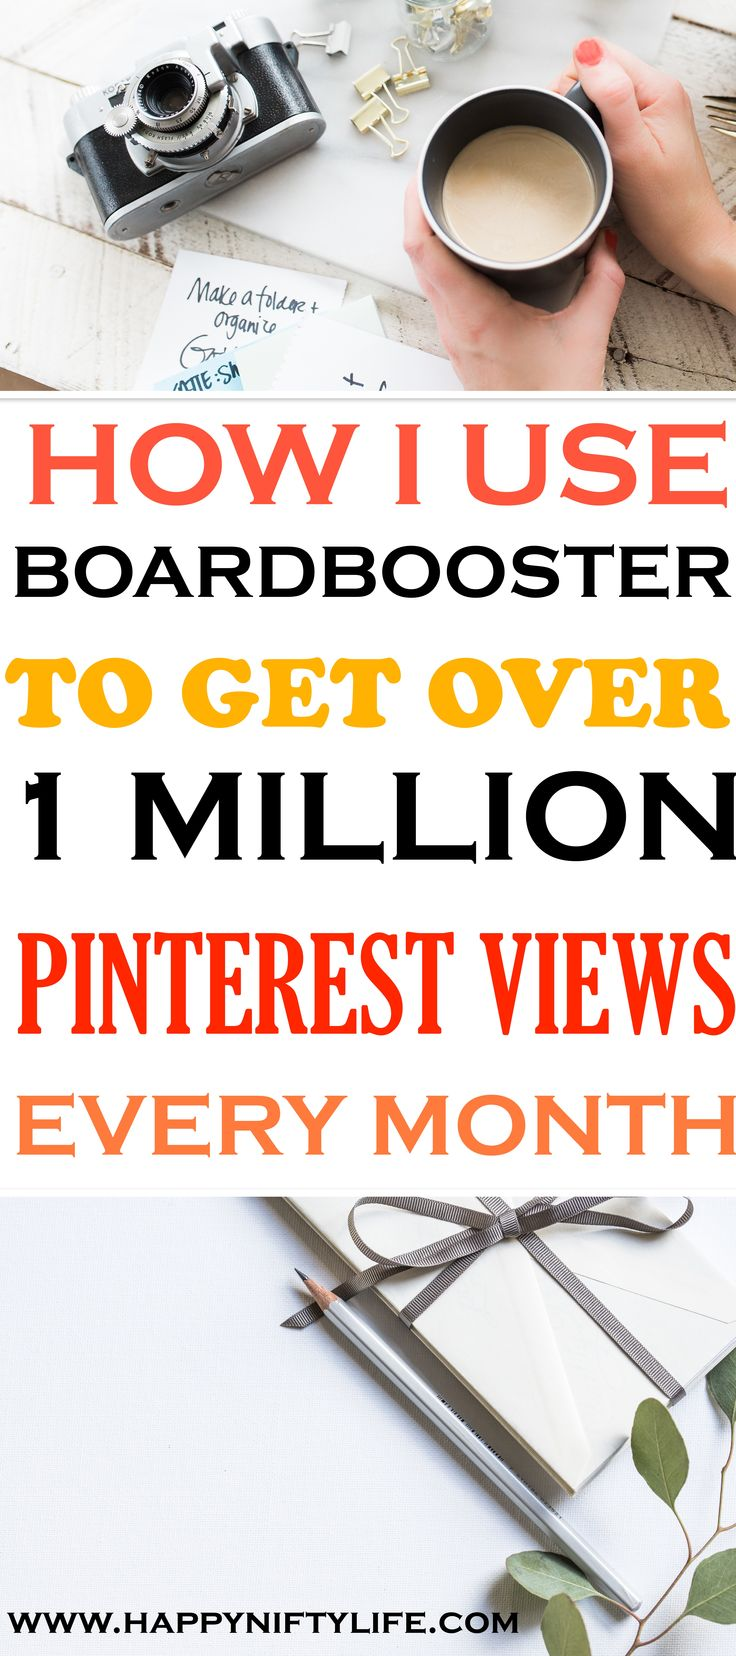 How to use BoardBooster and Pinterest for increasing blog traffic. Actionable Pinterest strategies to help boost your blog pageviews.